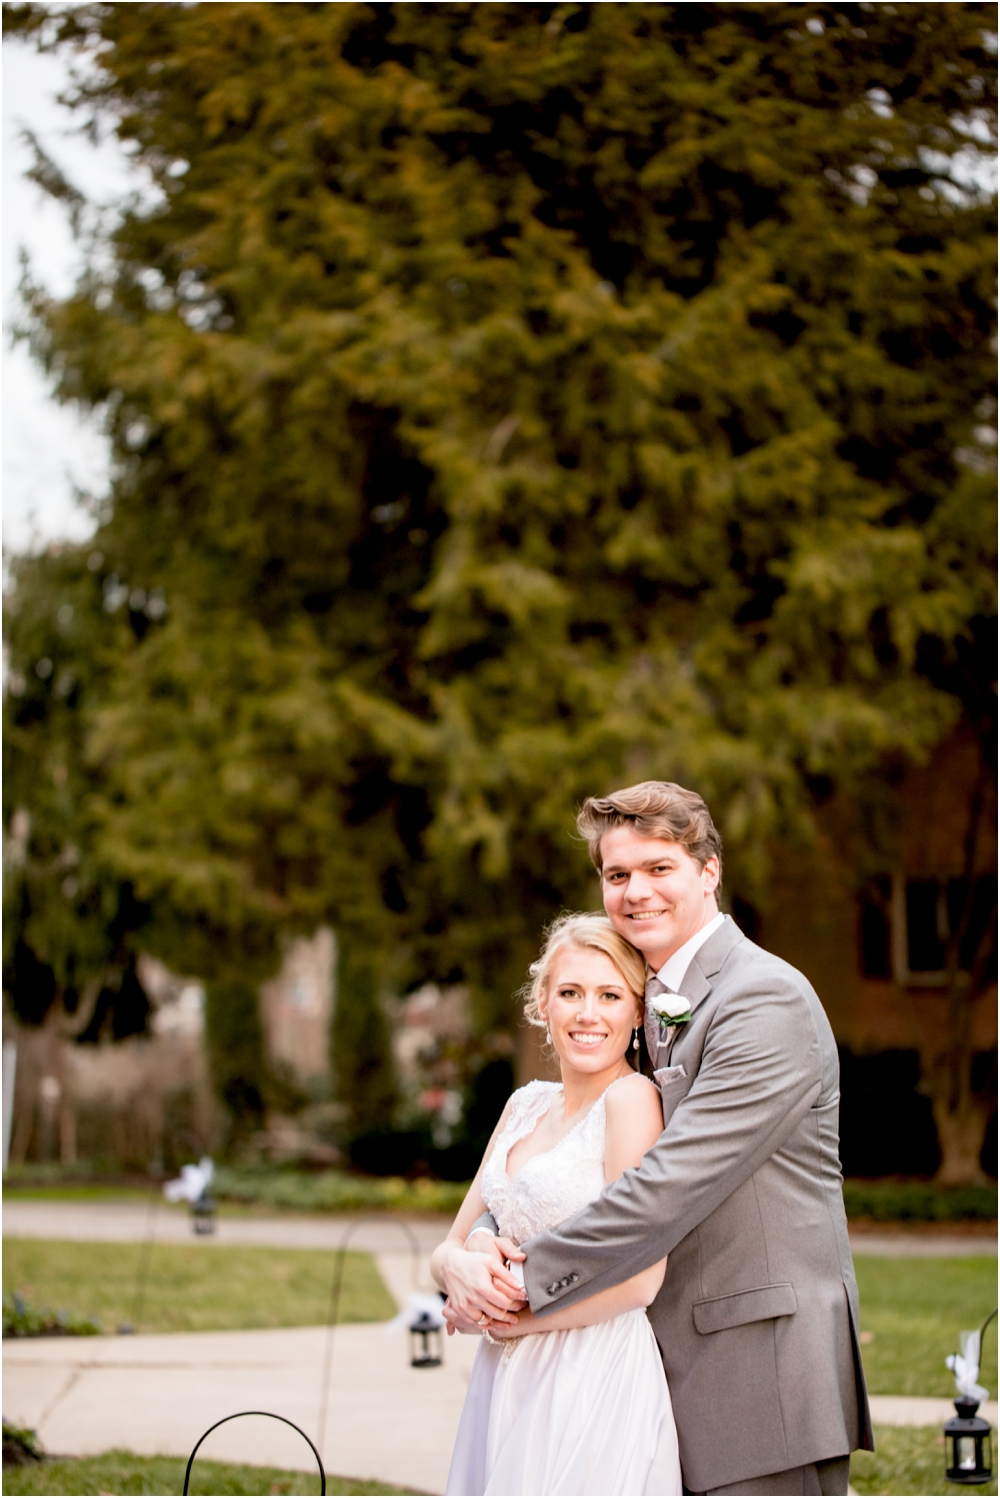 katelynn chris soper wedding valley country club town living radiant photogrpahy photos_0103.jpg